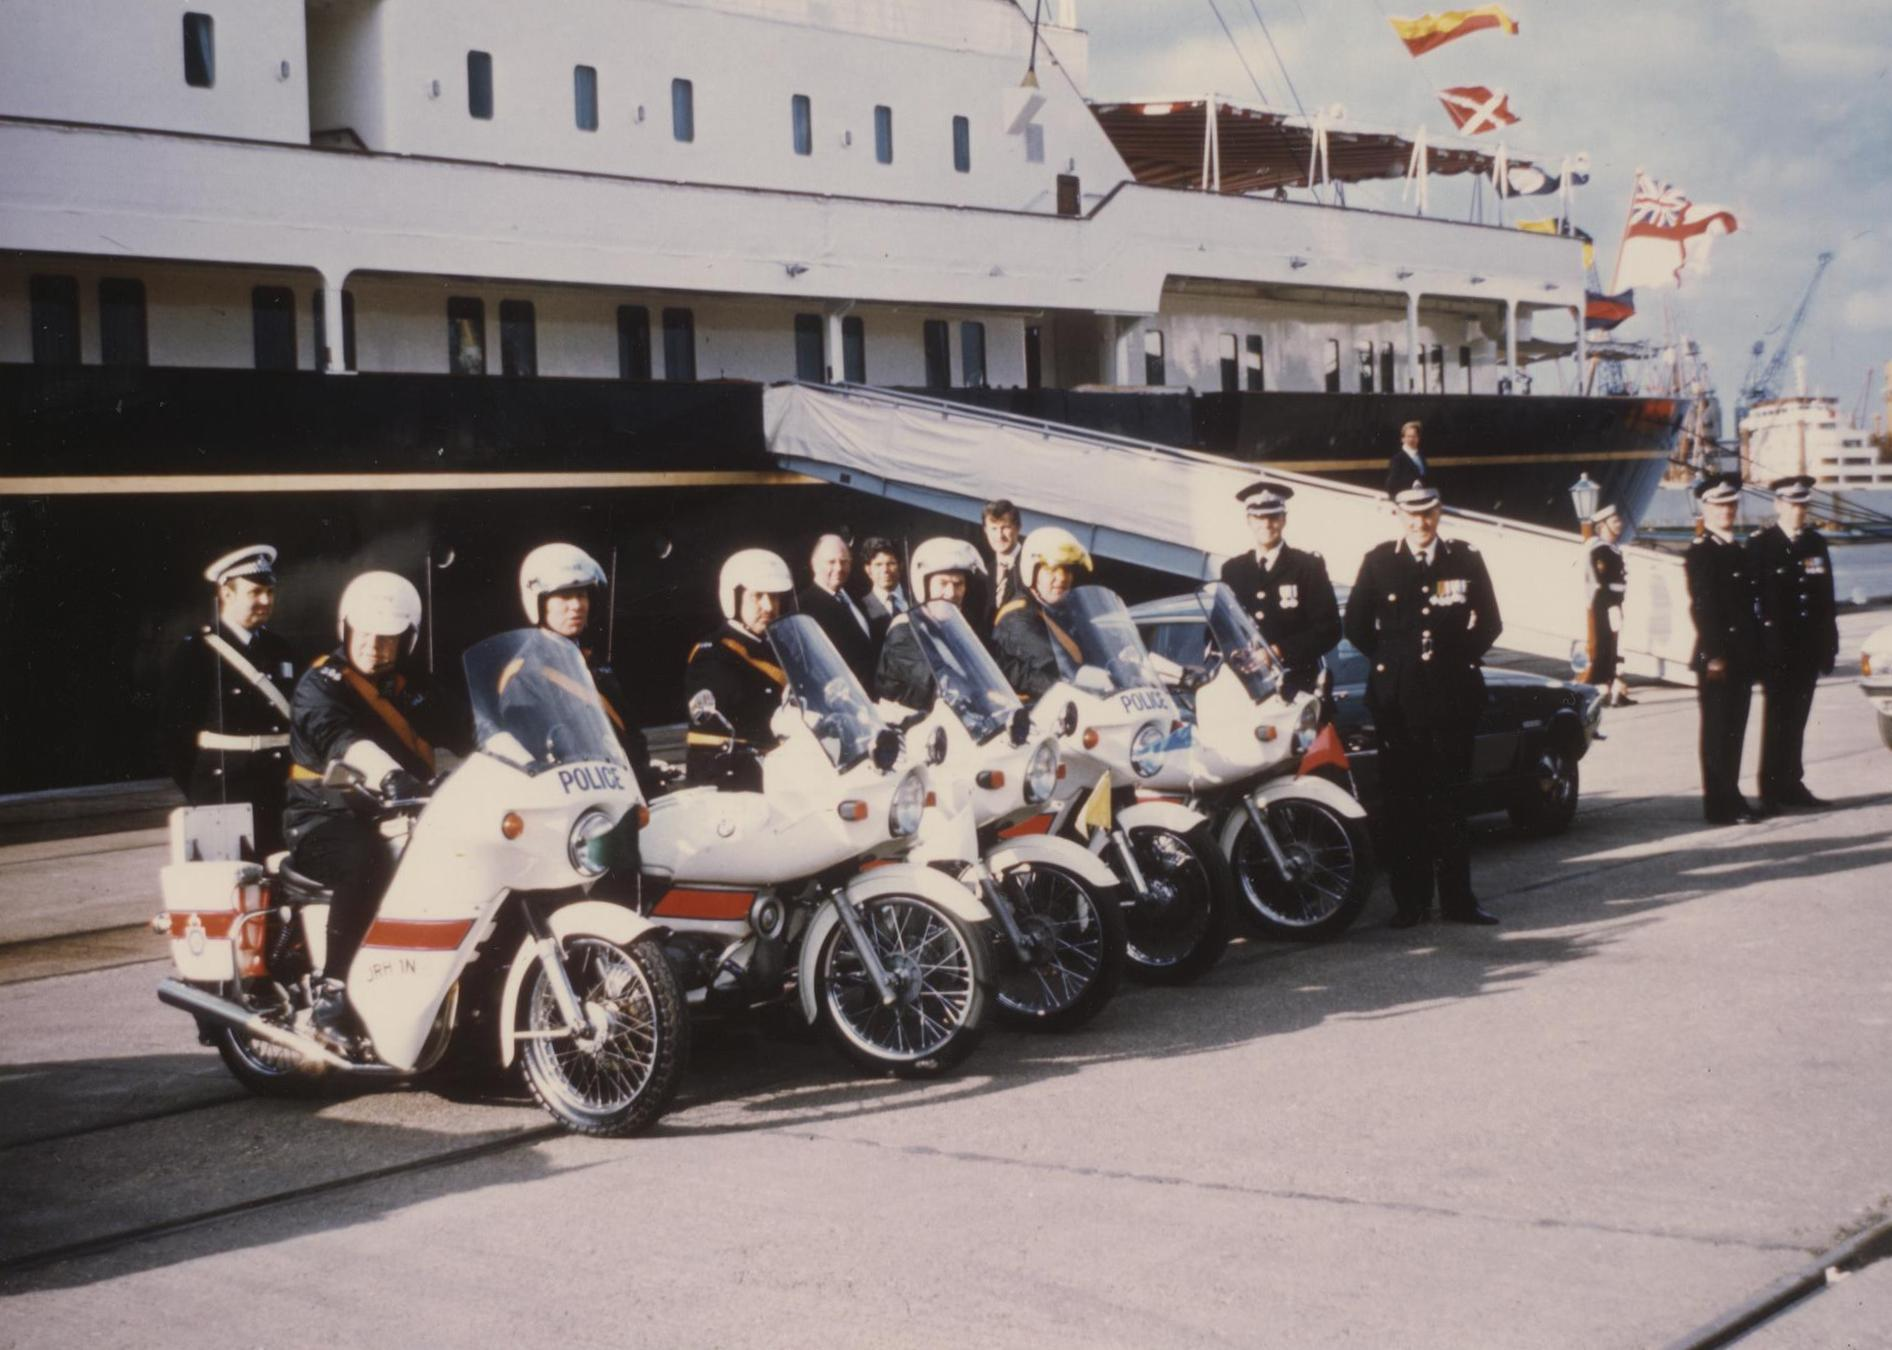 Police officers on motorbikes in front of Royal Yacht Britannia for Her Majesty The Queen's visit to Humberside 1977 (archive ref CCHU-4-1-9-2)